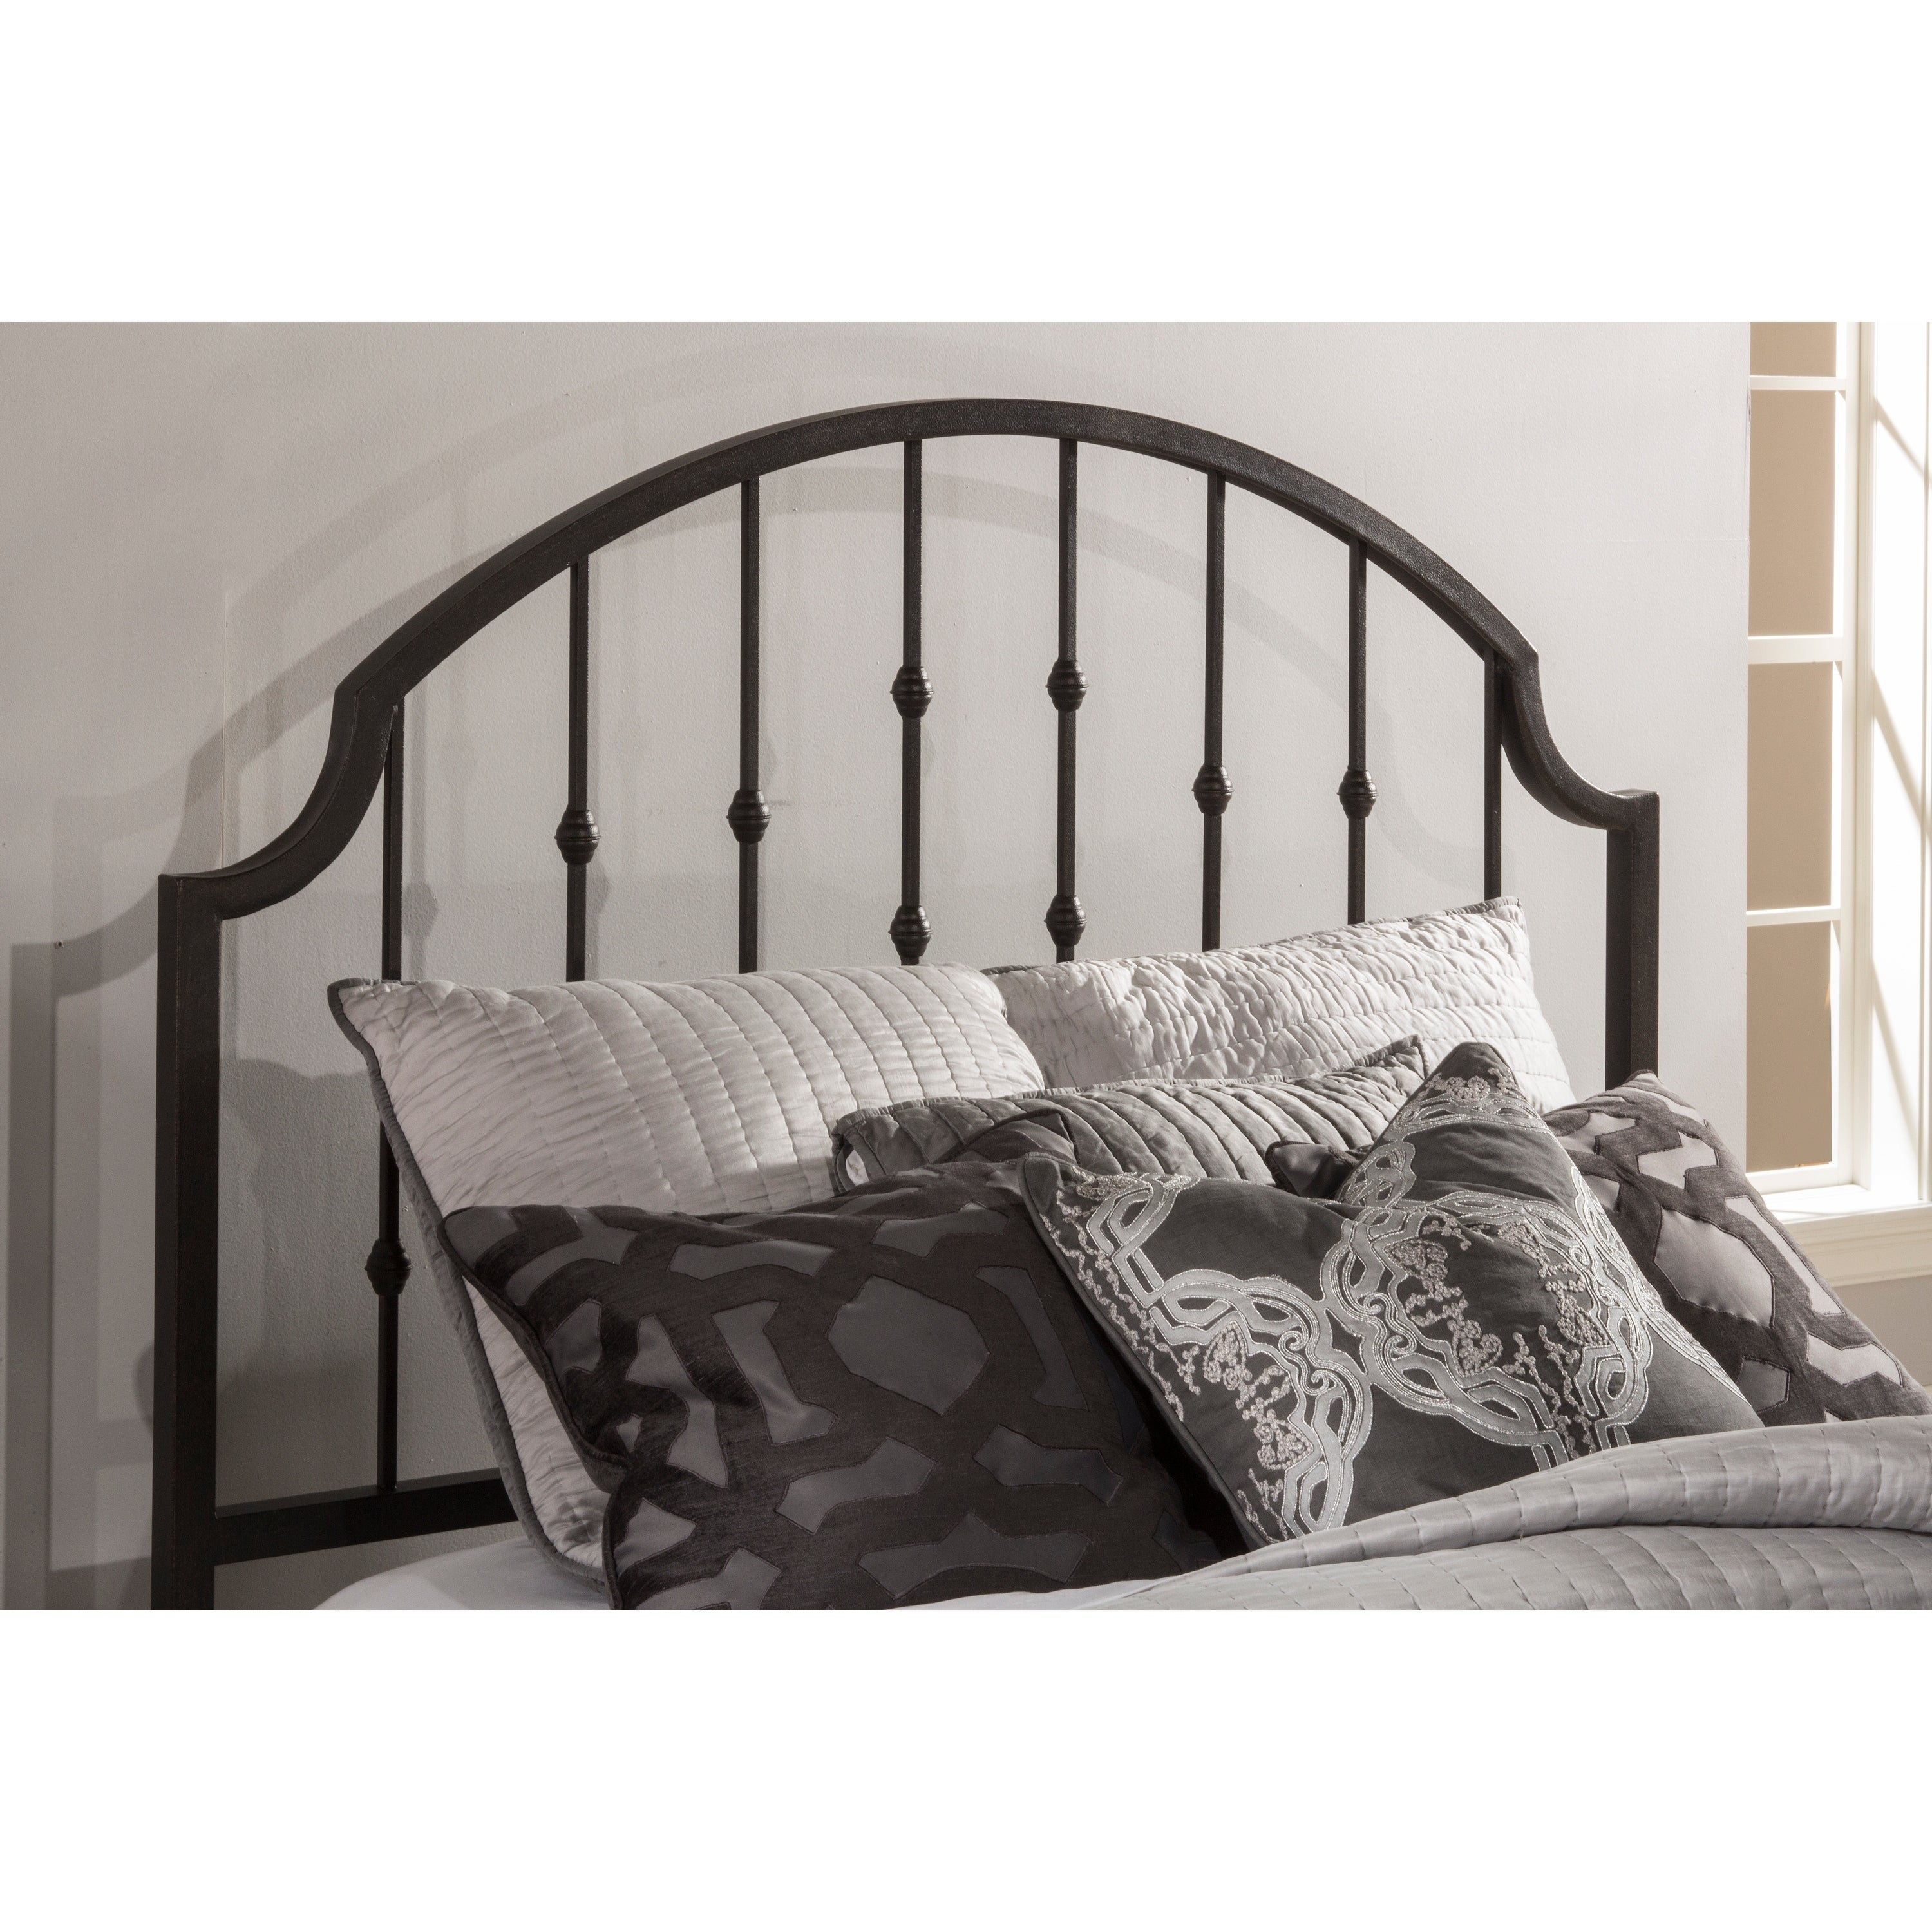 Copper Grove Fallingbostel Distressed Black Metal Traditional Headboard Frame Not Included Overstock 28125633 Queen